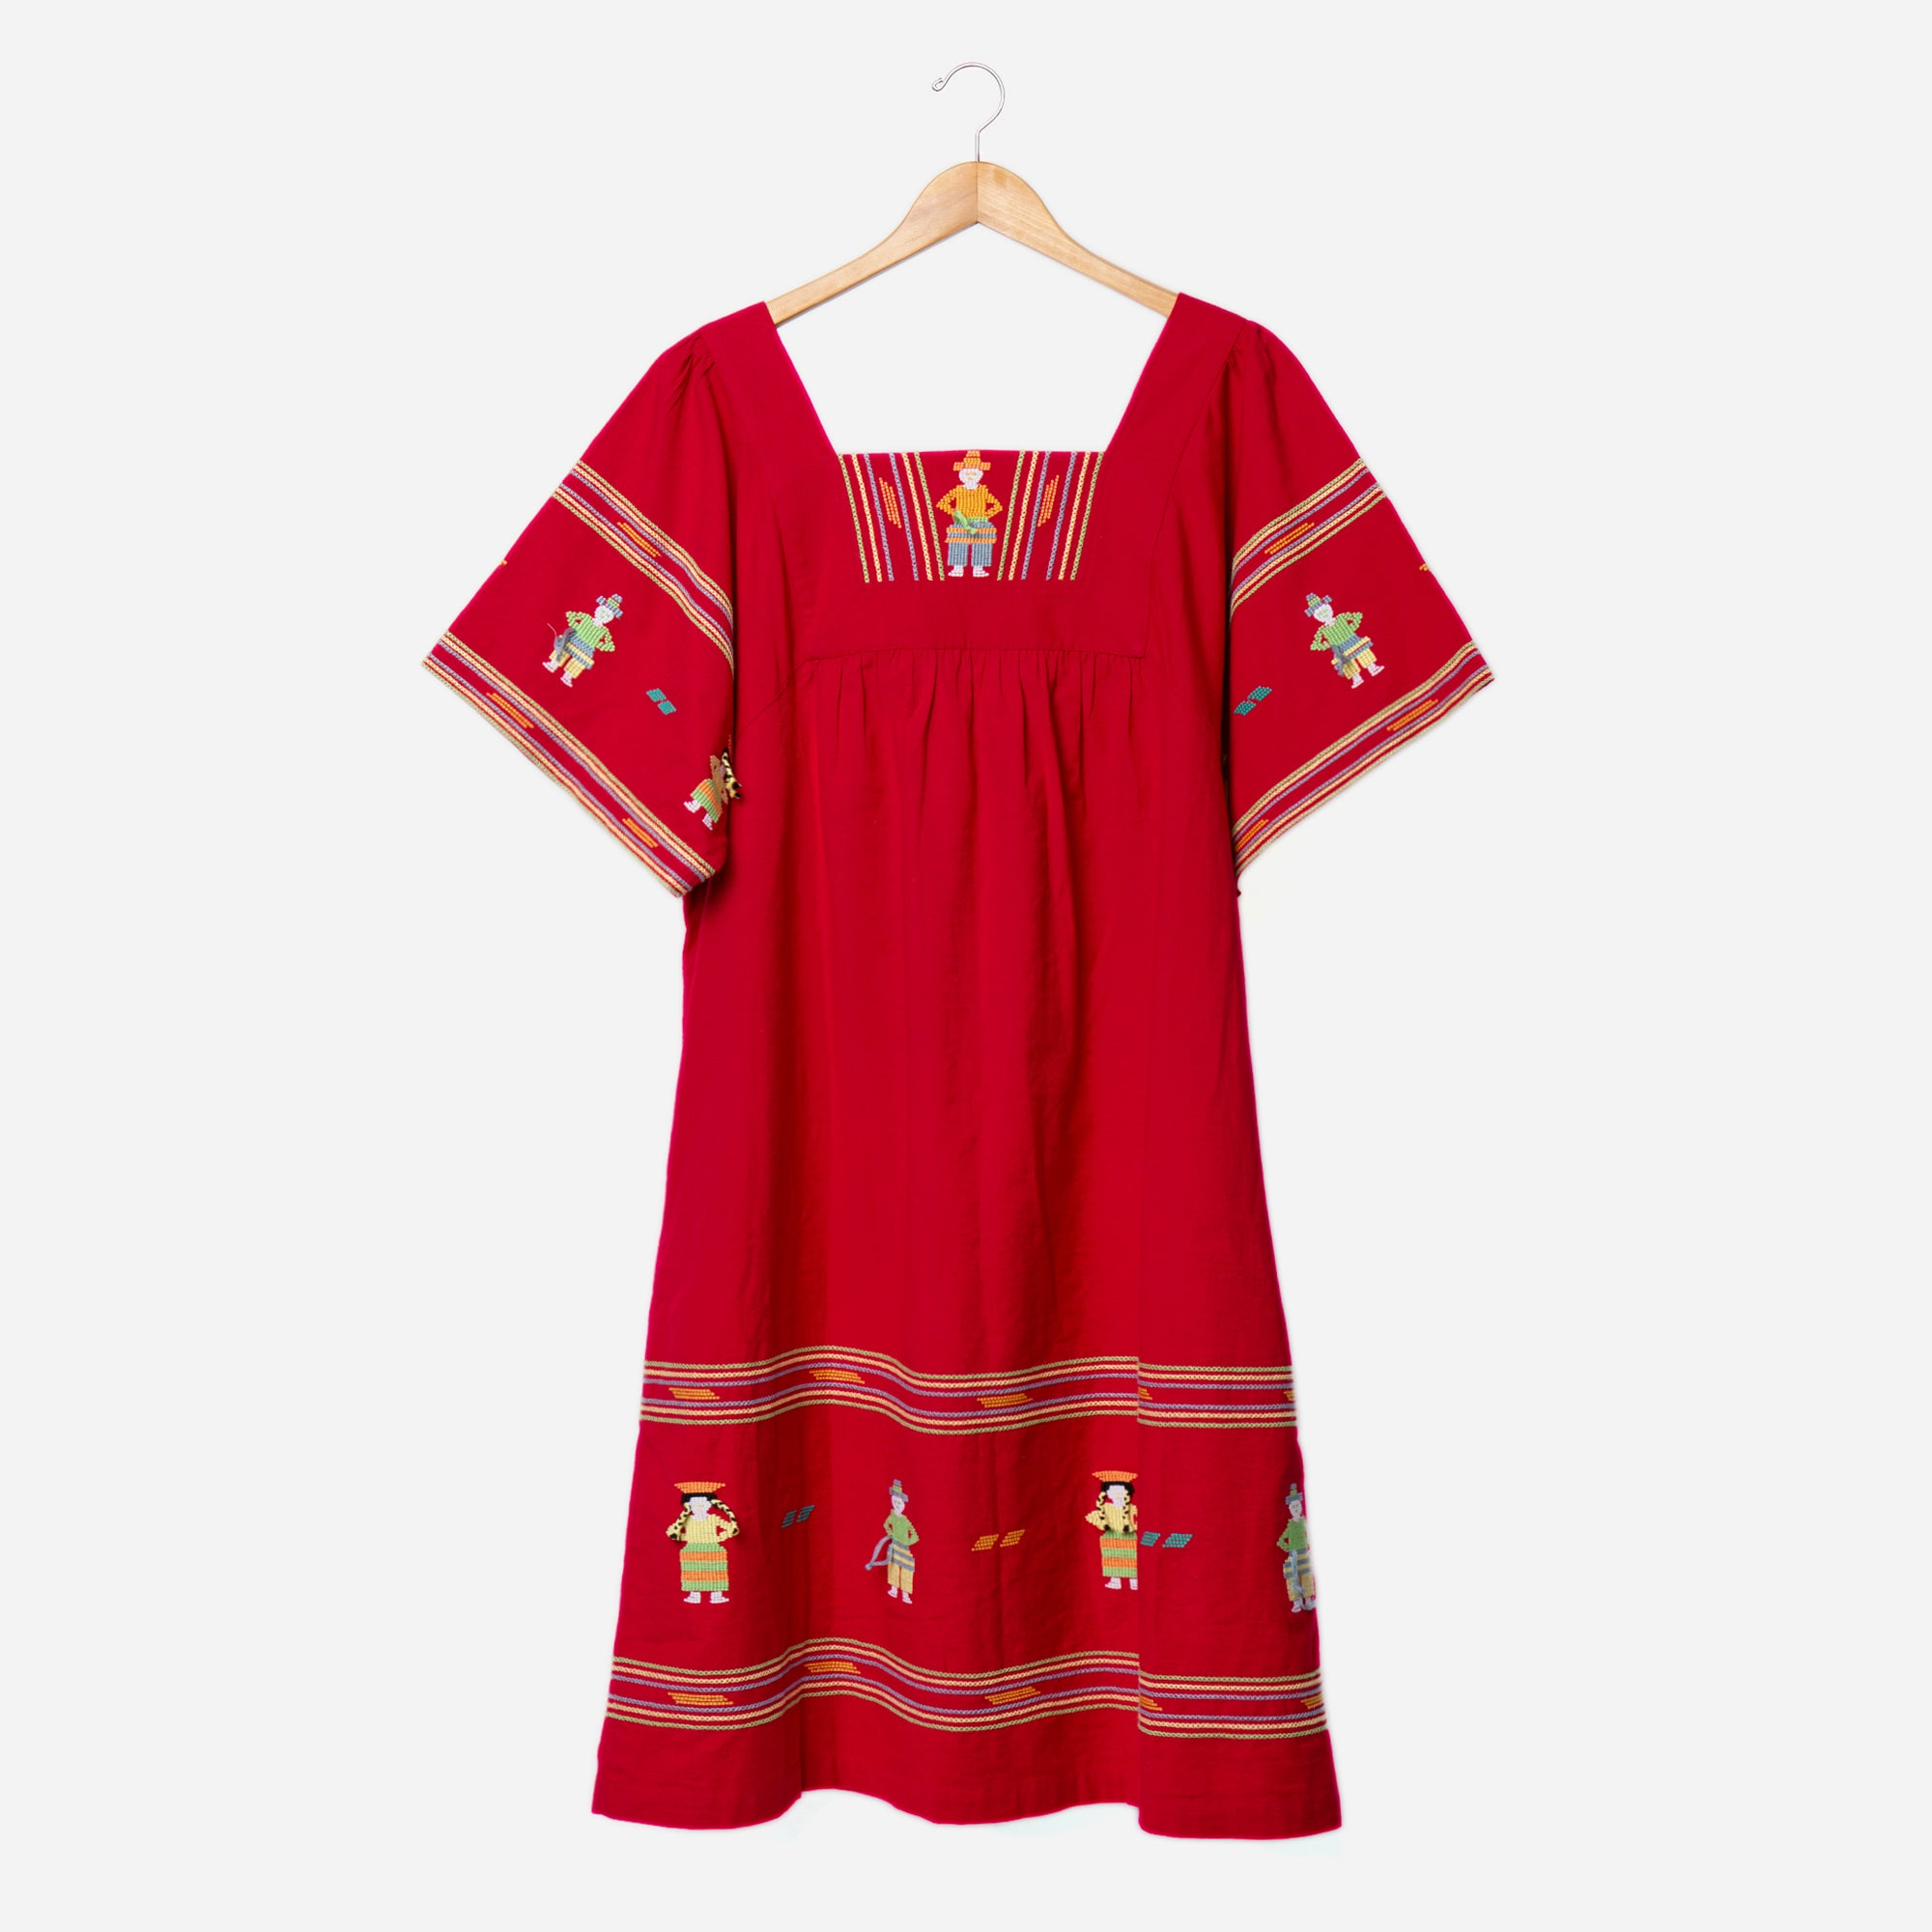 Picnic Dress Red